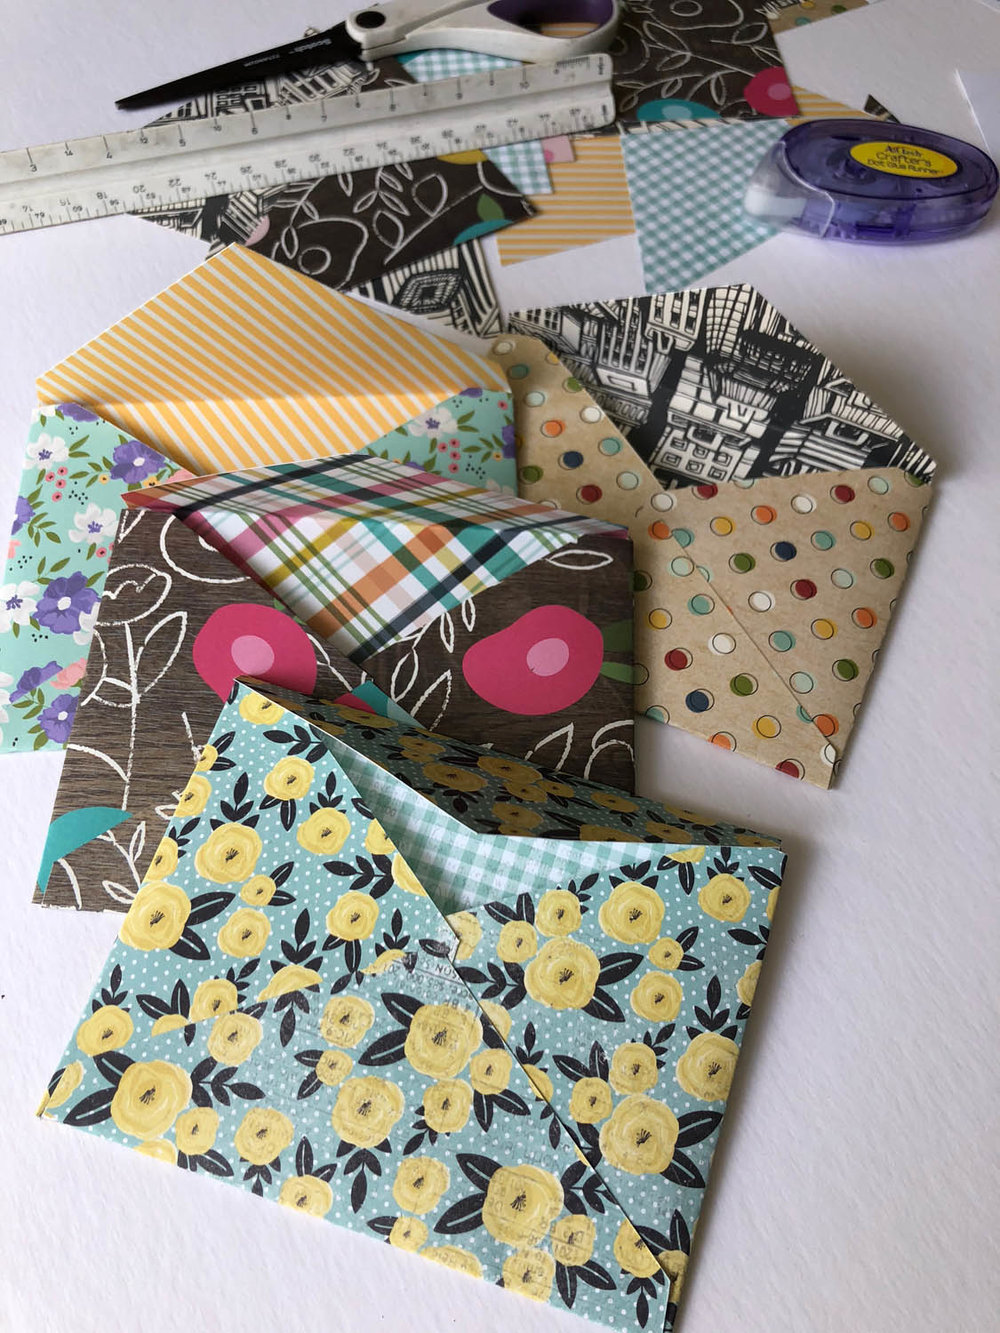 DIY Envelopes With Scrapbook Paper - What to do with extra scrapbook paper!